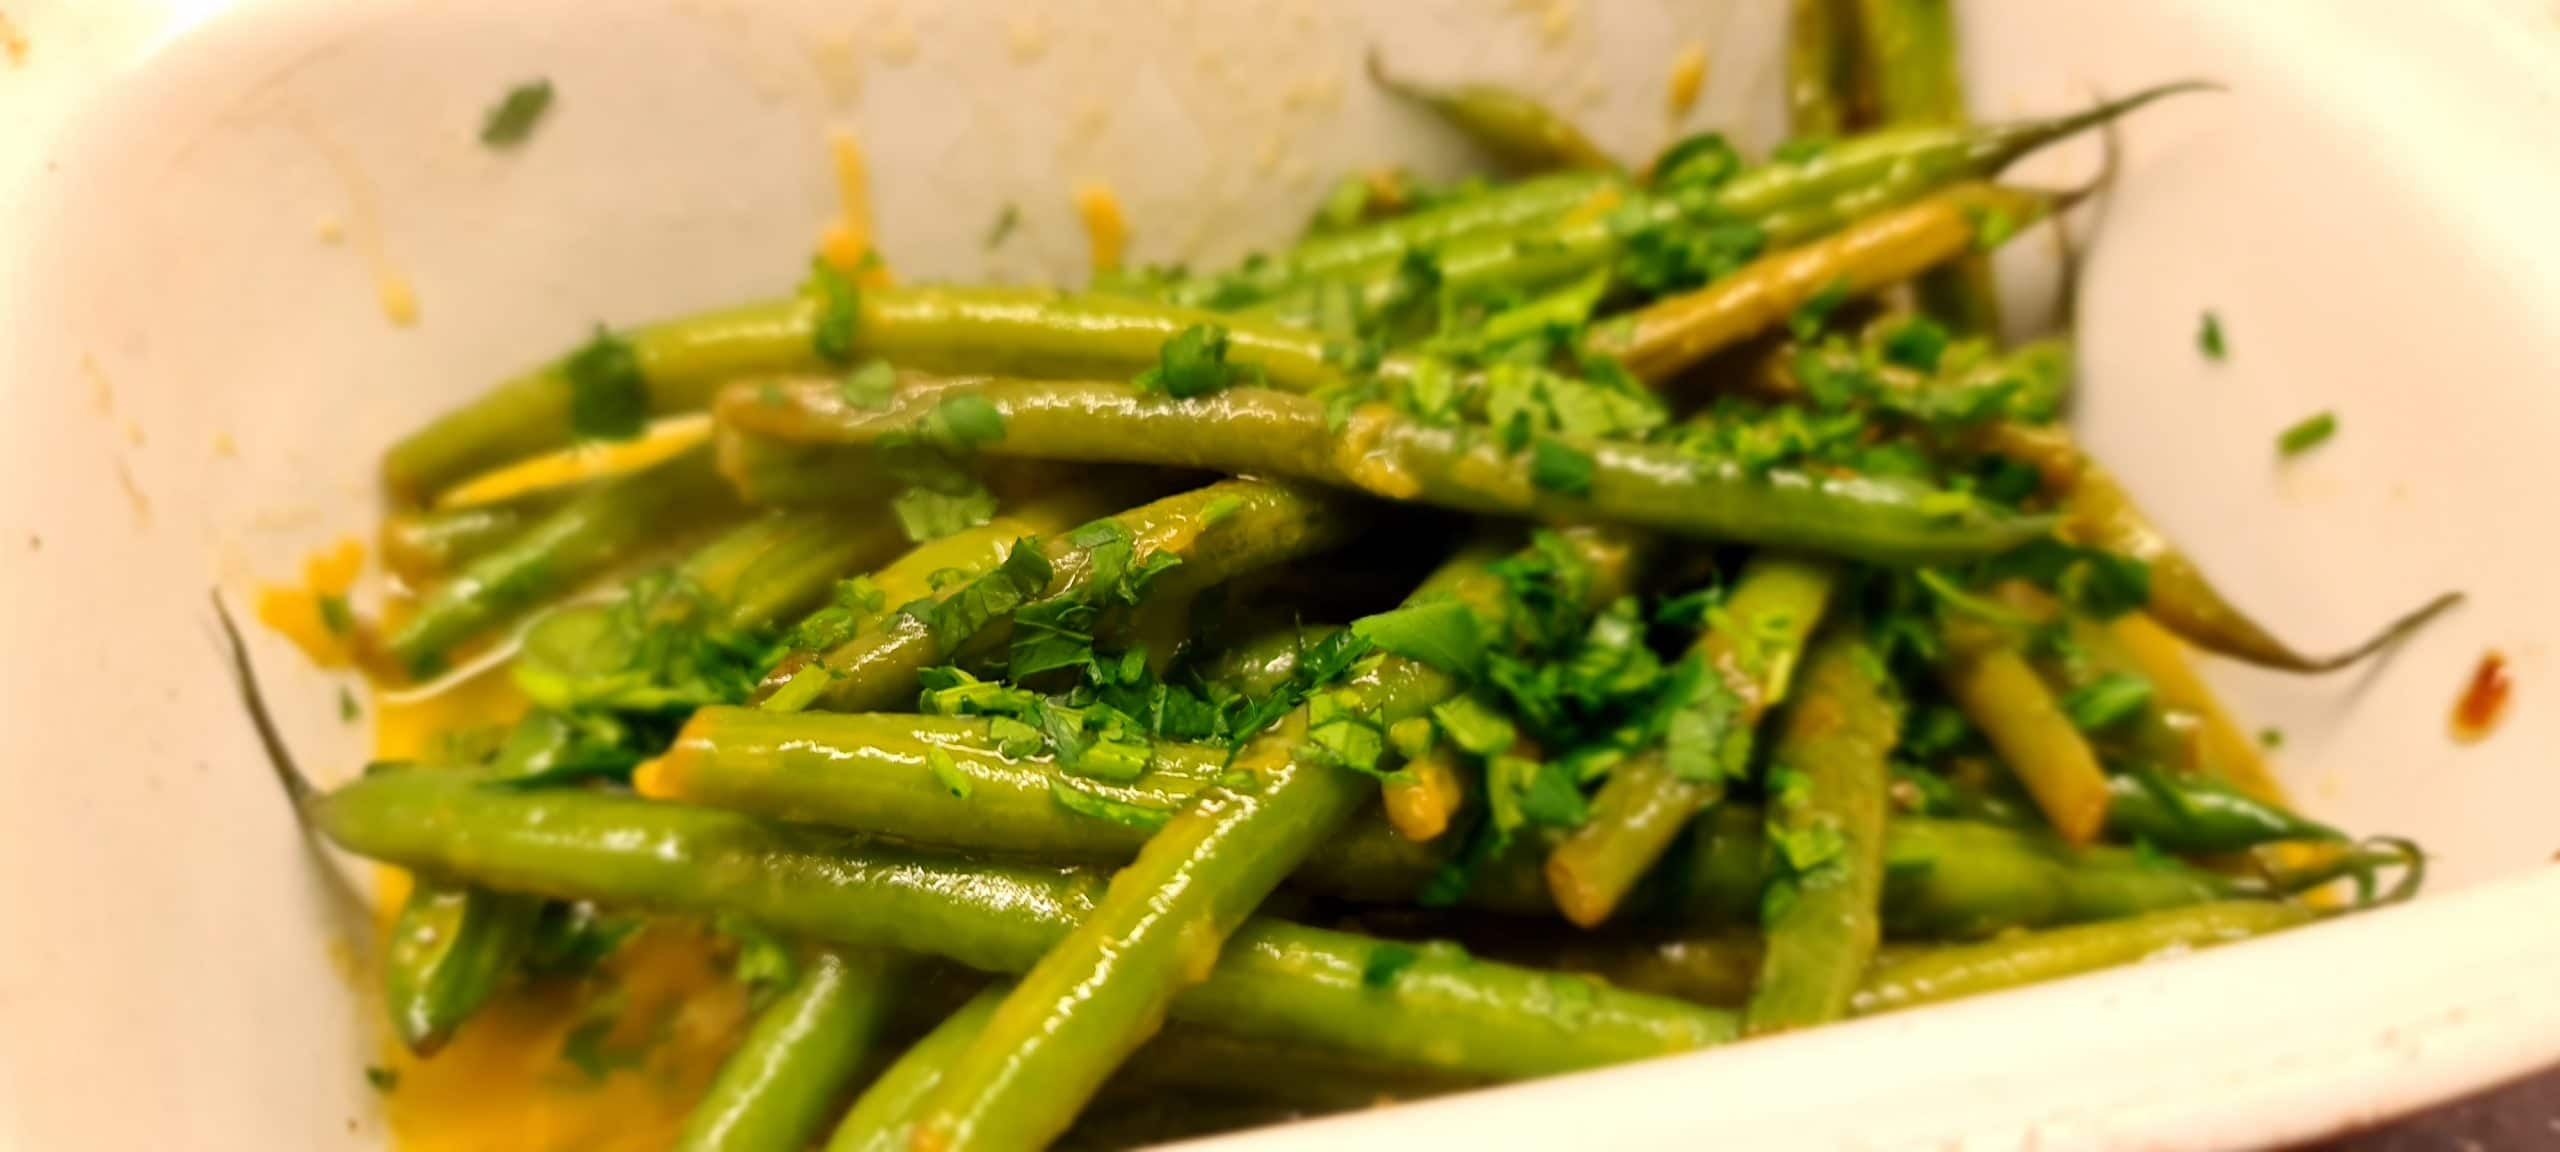 You are currently viewing Lemon and Parsley Green Beans